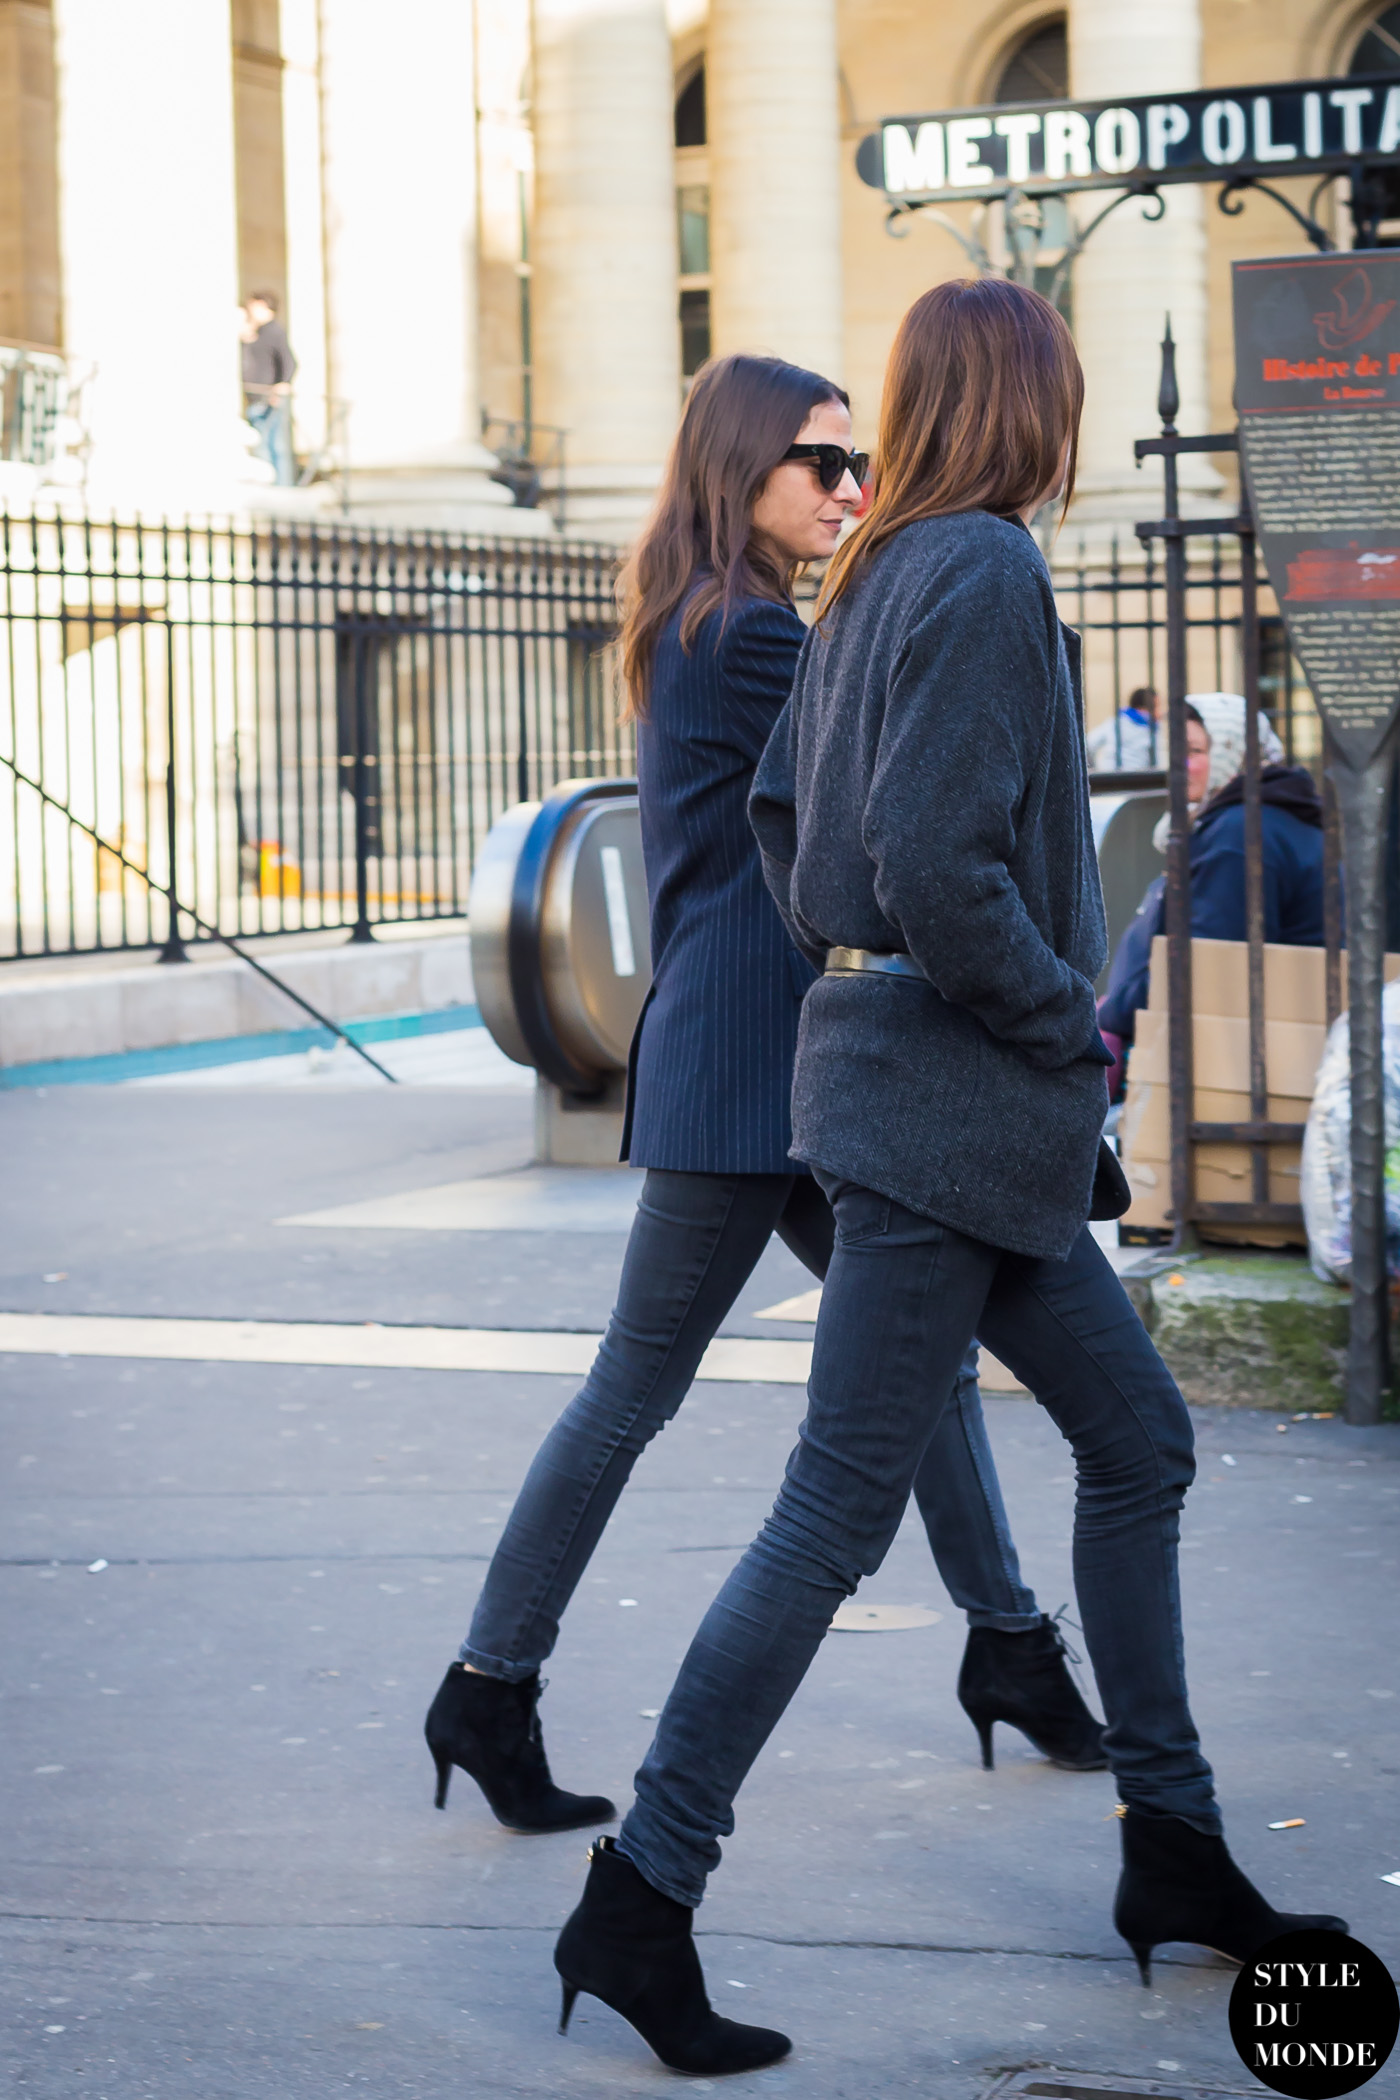 Claire Dhelens and Capucine Safyurtlu Street Style Street Fashion Streetsnaps by STYLEDUMONDE Street Style Fashion Blog